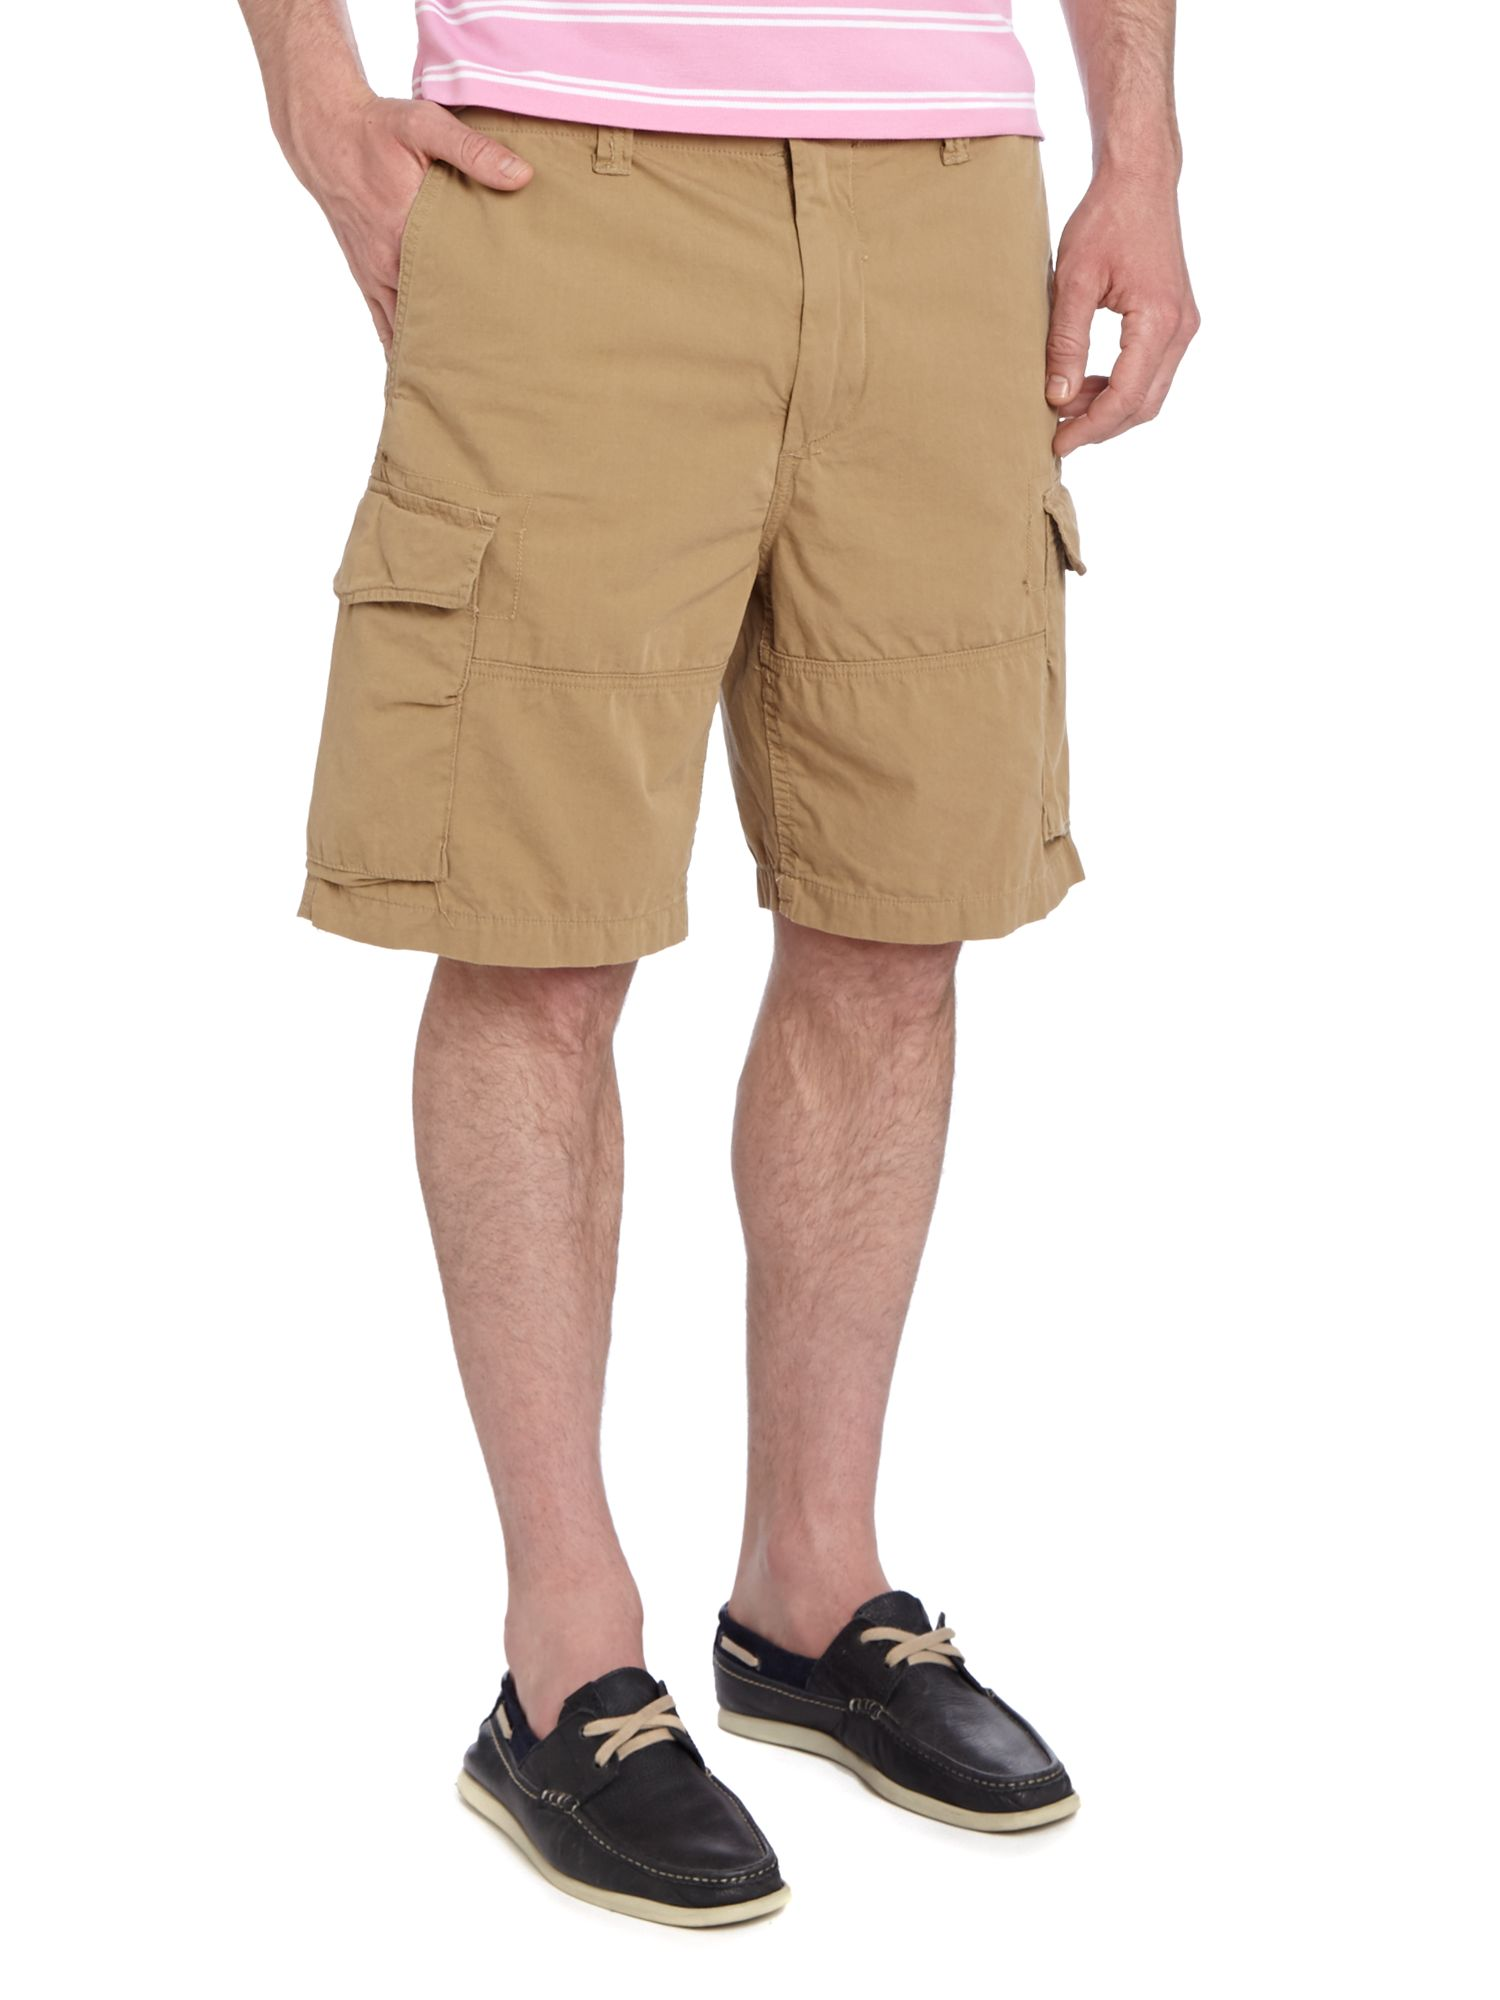 Corprol relaxed fit cargo short